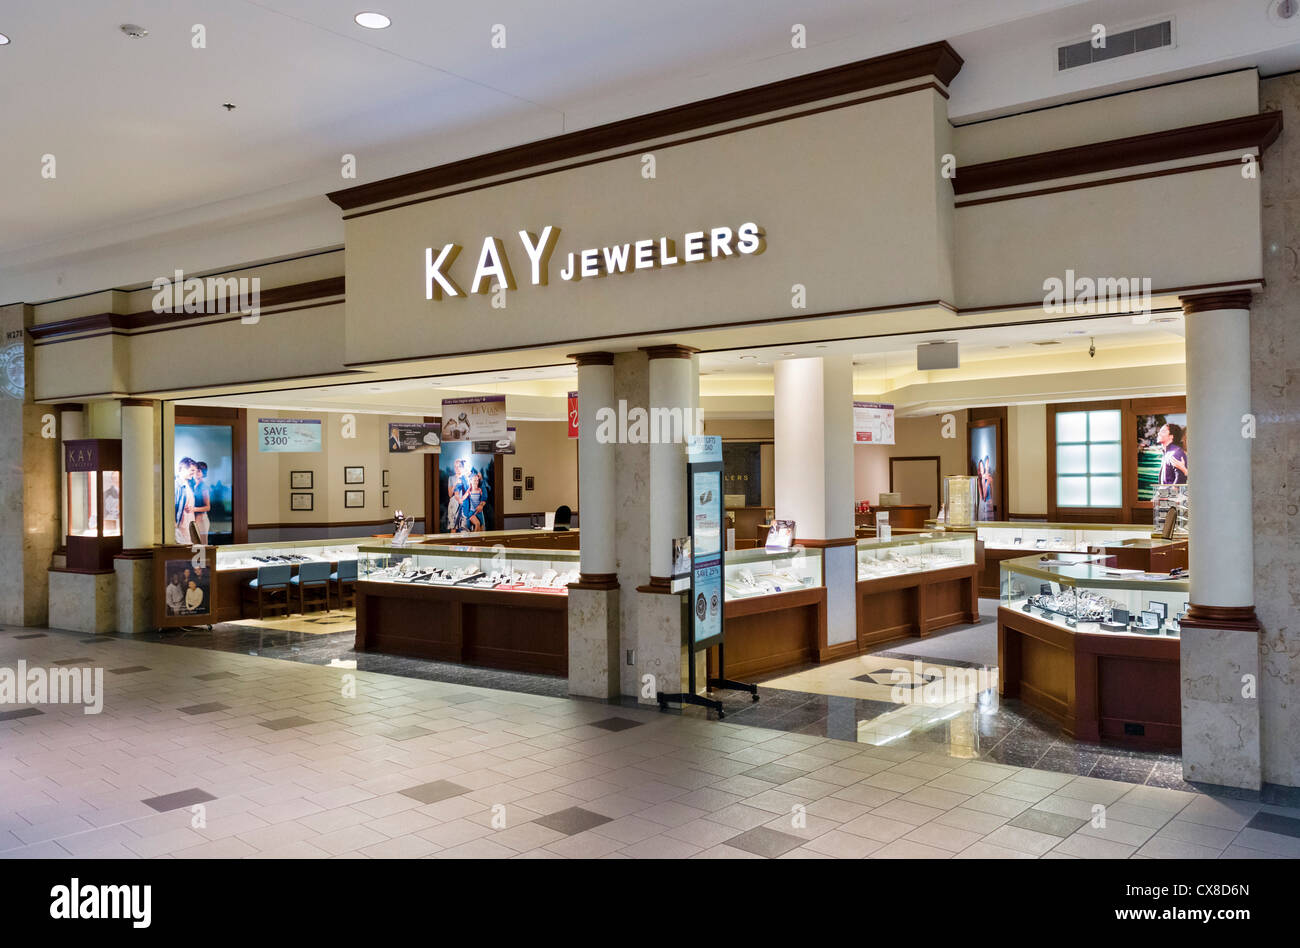 kay jewelers store in the mall of america bloomington minneapolis stock photo royalty free. Black Bedroom Furniture Sets. Home Design Ideas